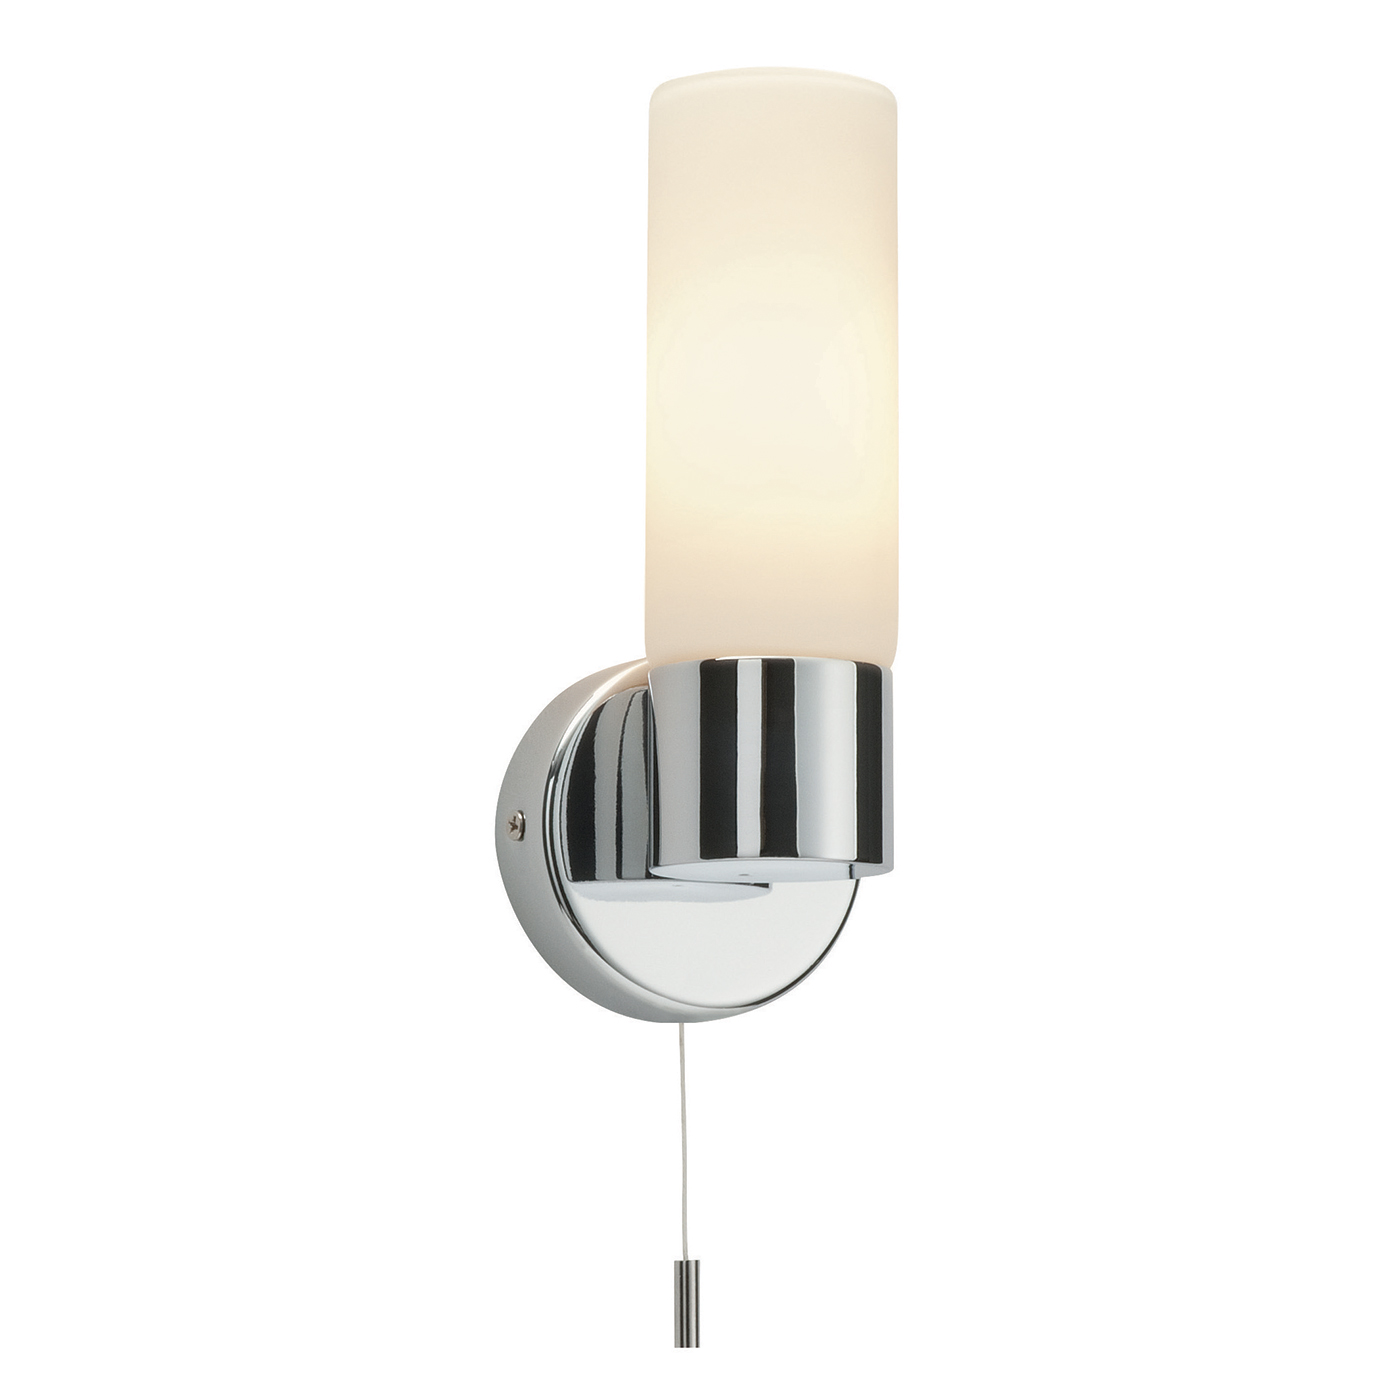 Endon Pure 1lt bathroom wall light IP44 40W Chrome & opal glass pull cord